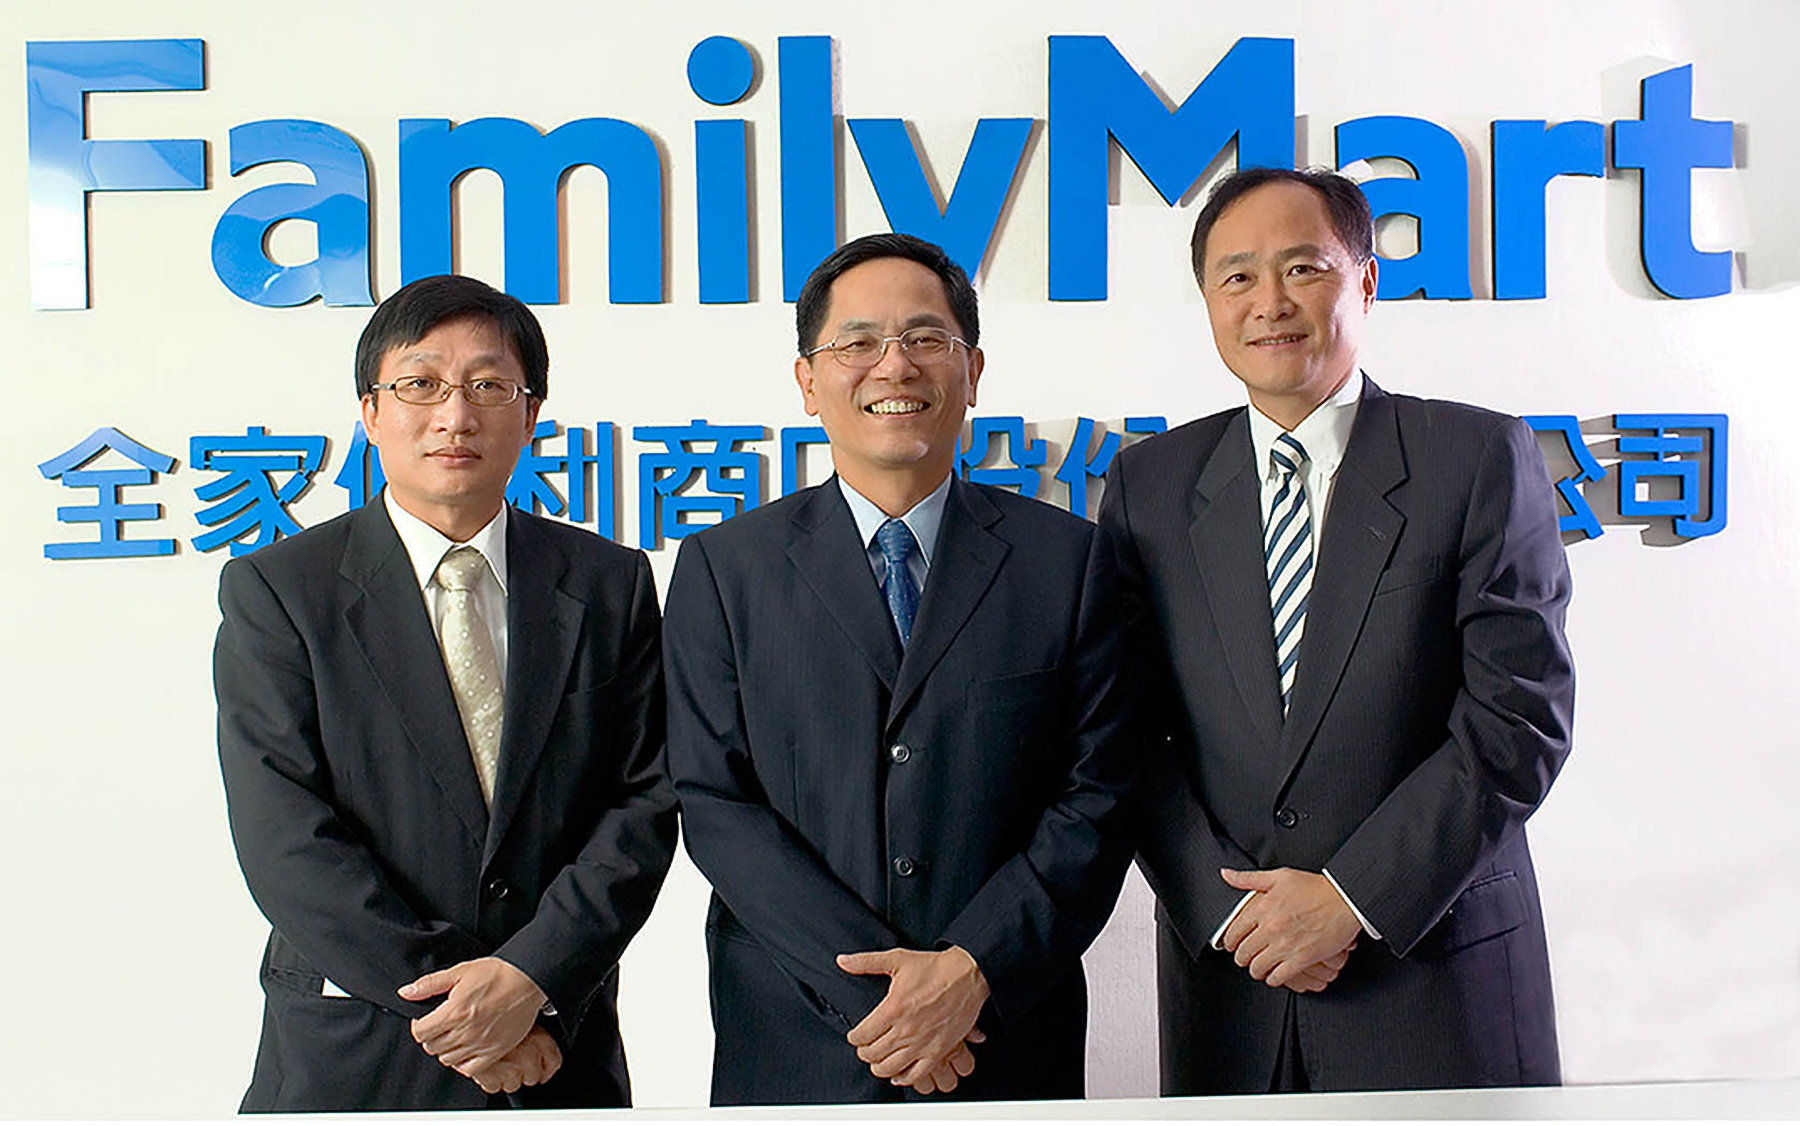 R.D. Chang (center), Taiwan's FamilyMart President and Chief Operating Officer and FamilyMart executives.  FamilyMart has over 2,850 stores throughout Taiwan and accepts the highest bill payments of any convenience store chain in Taiwan, over 100 million bills per year!  FamilyMart is the 2nd most popular convenience store in Taiwan.